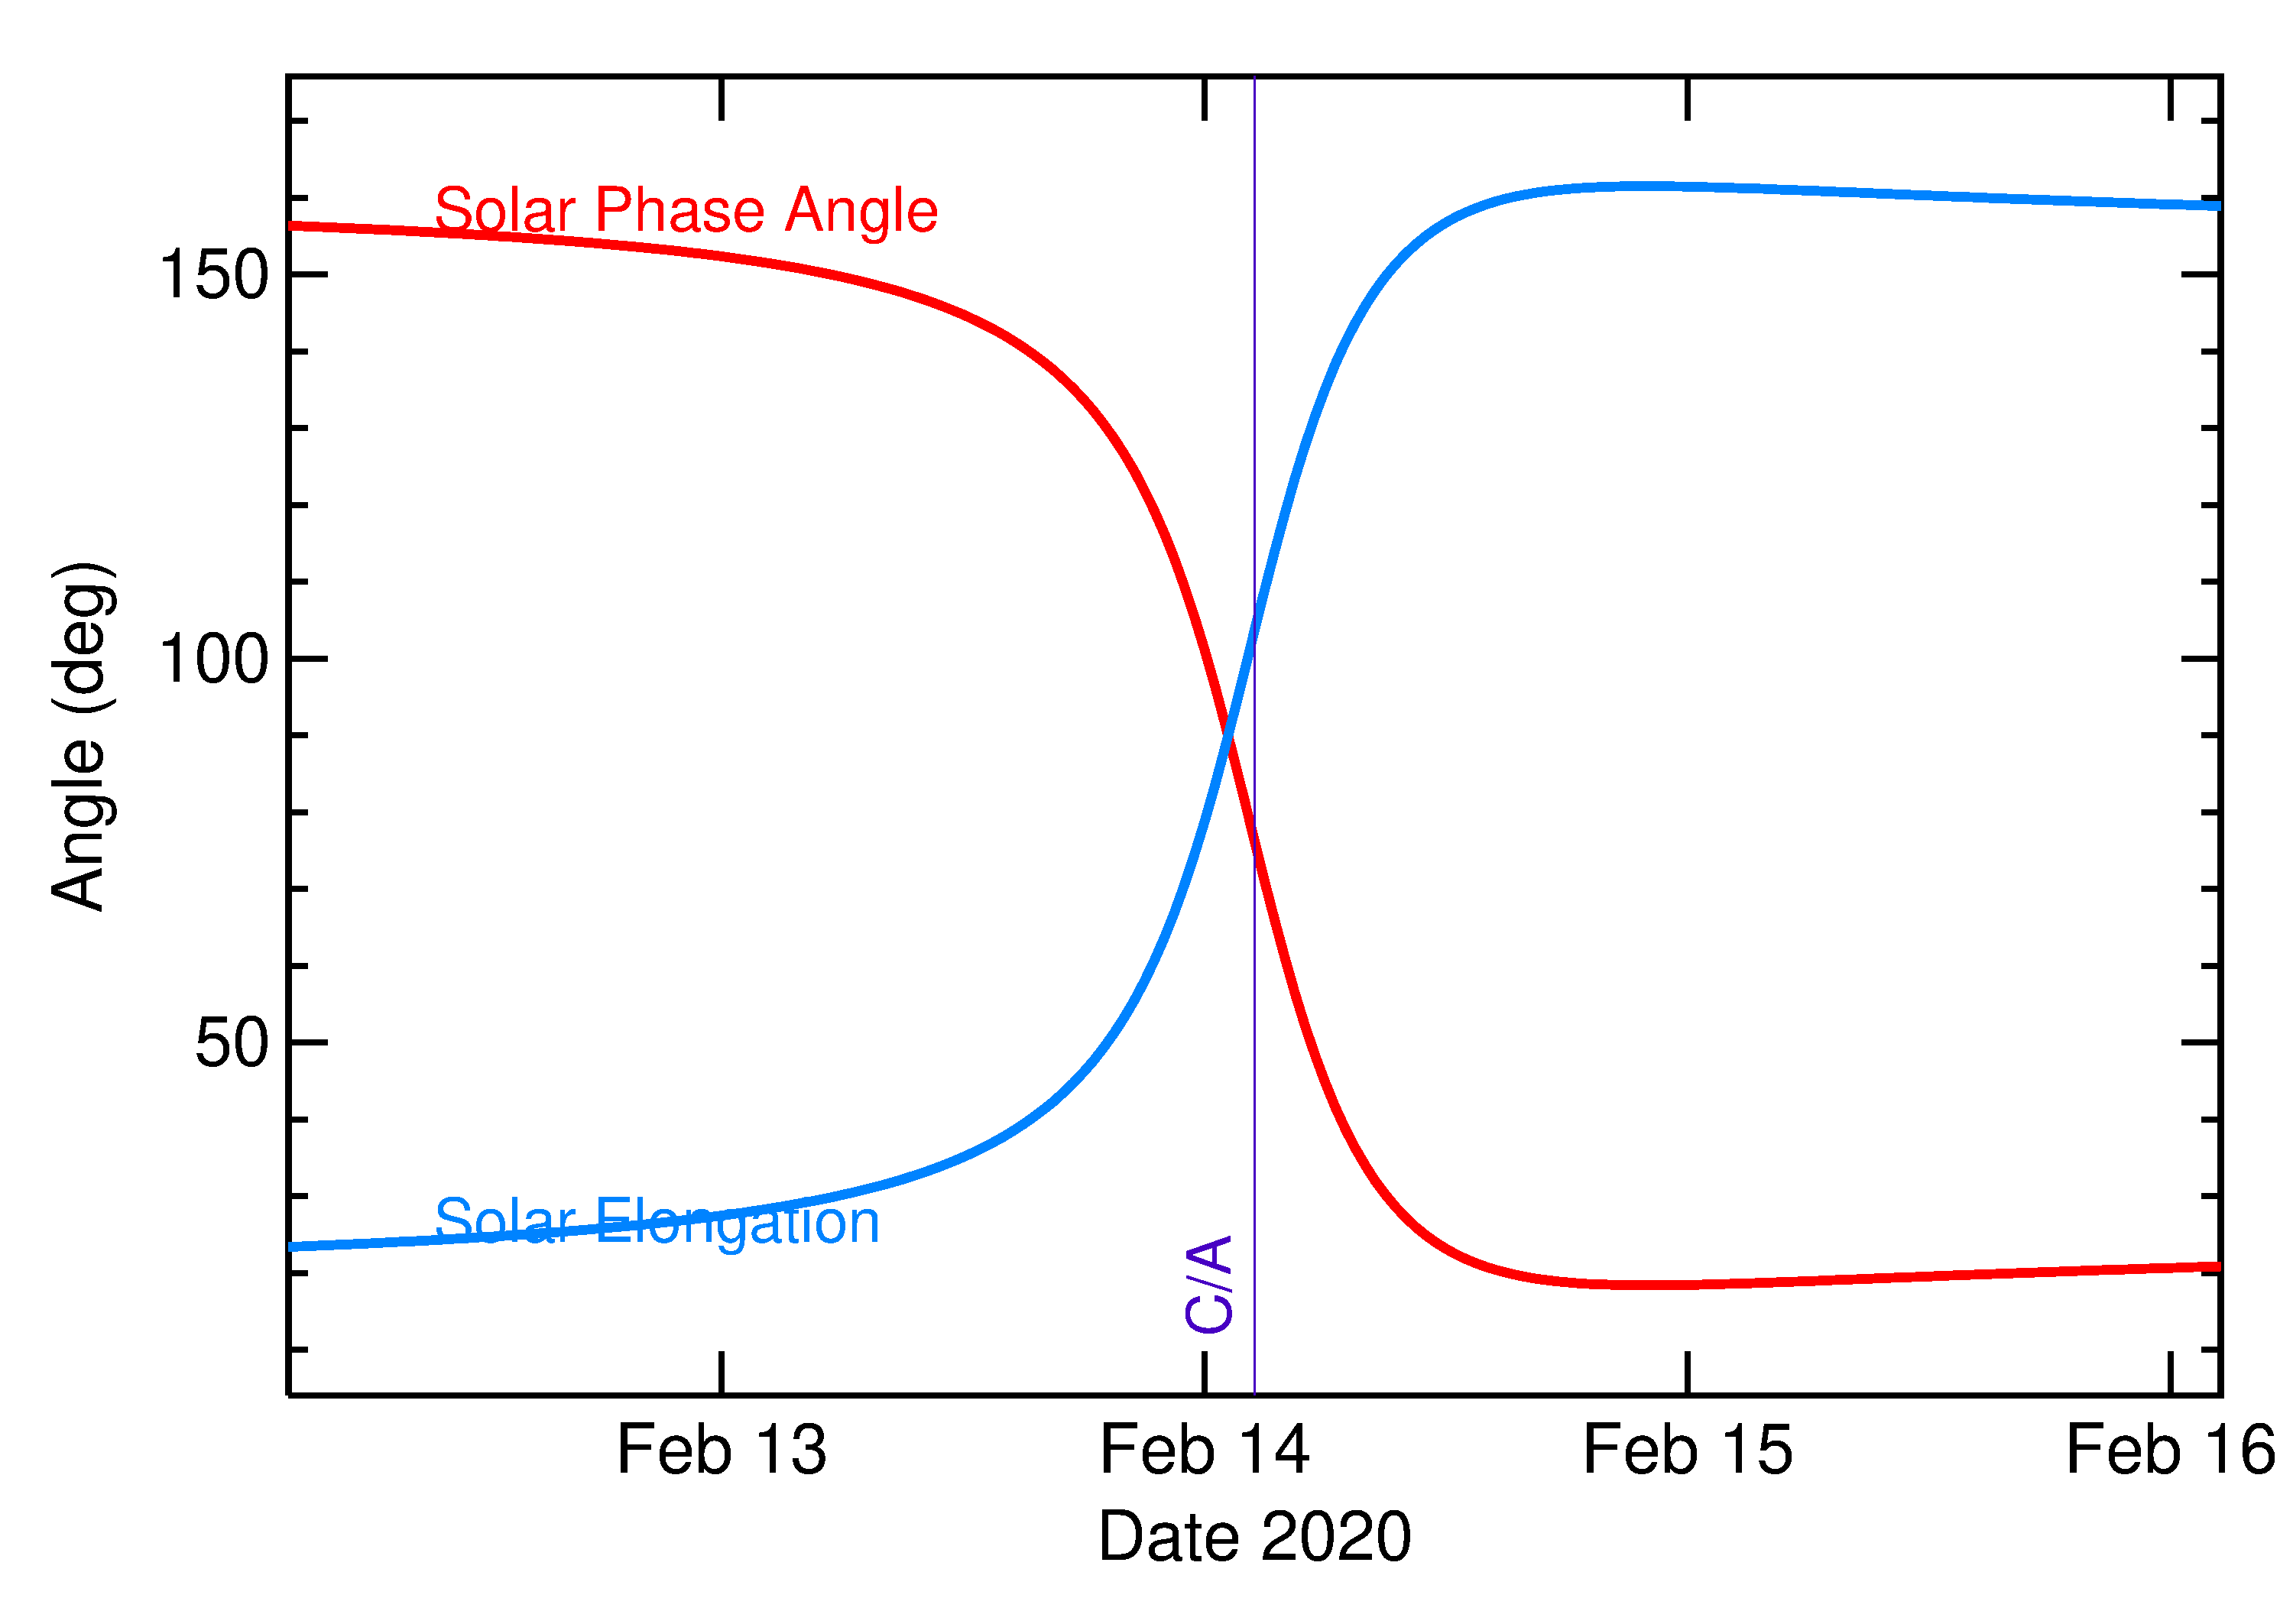 Solar Elongation and Solar Phase Angle of 2020 CQ2 in the days around closest approach